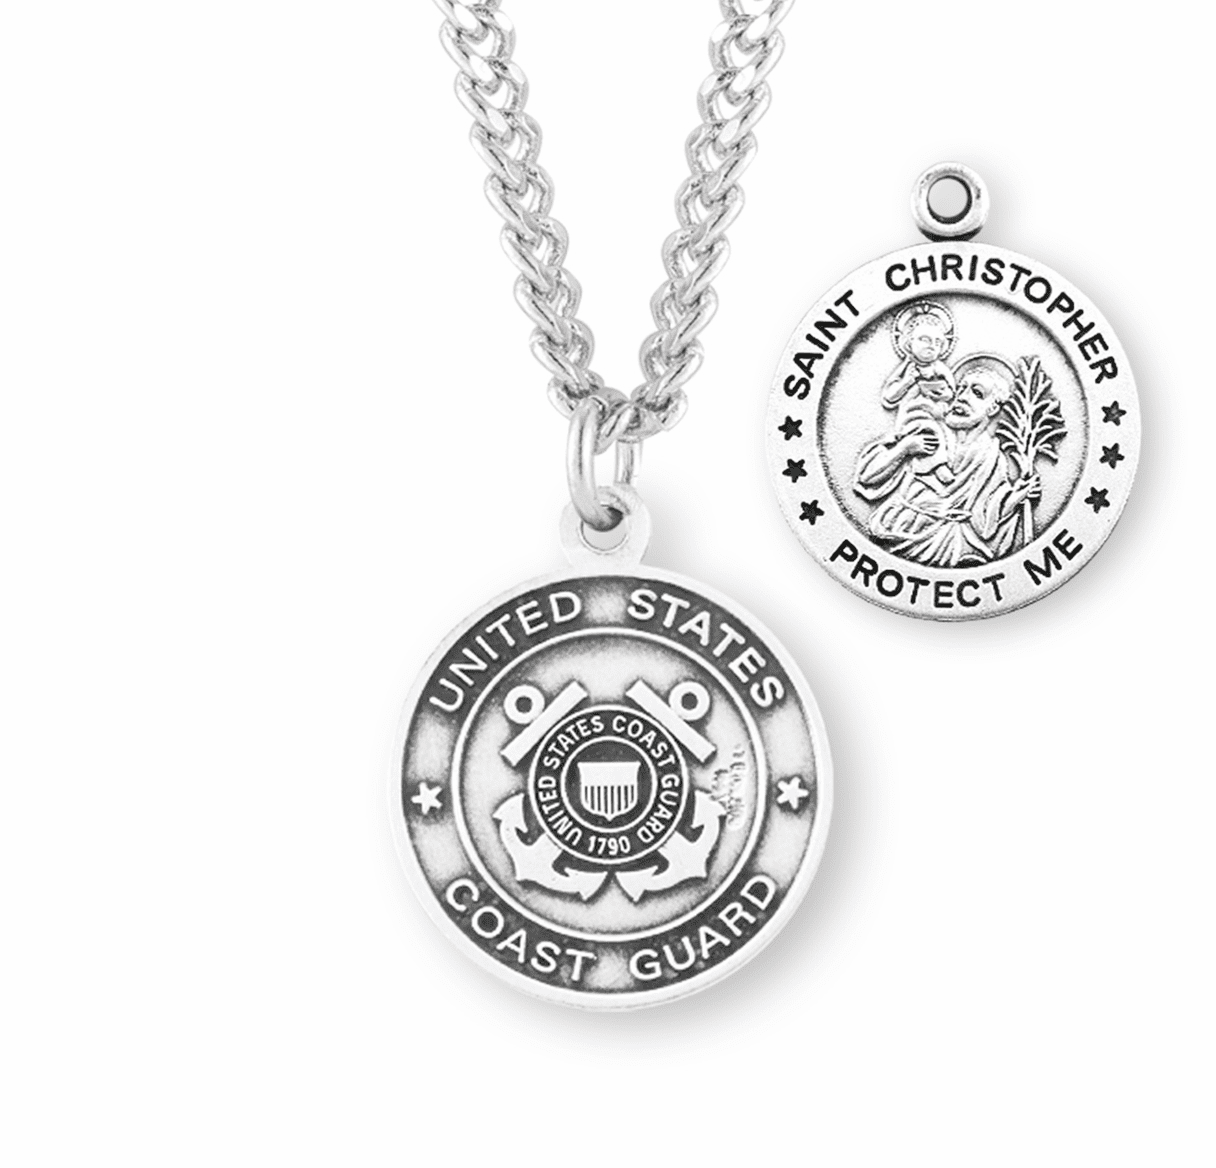 Military St Christopher Coast Guard Sterling Silver Medal Necklace by HMH Religious